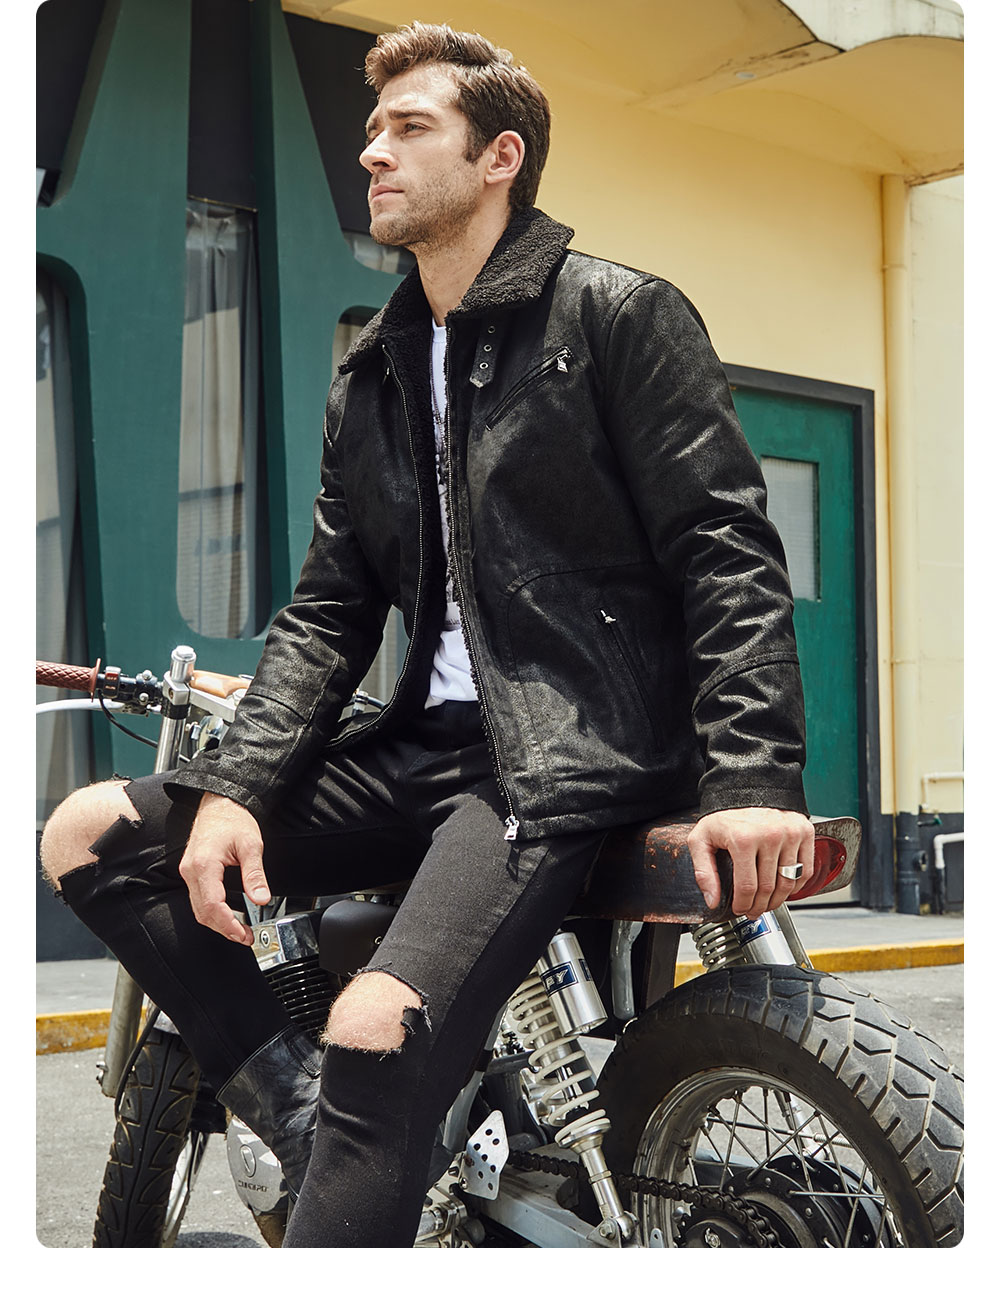 H67aef8c1289c43d186bedc40fd723555l FLAVOR New Men's Genuine Leather Motorcycle Jacket Pigskin with Faux Shearling Real Leather Jacket Bomber Coat Men